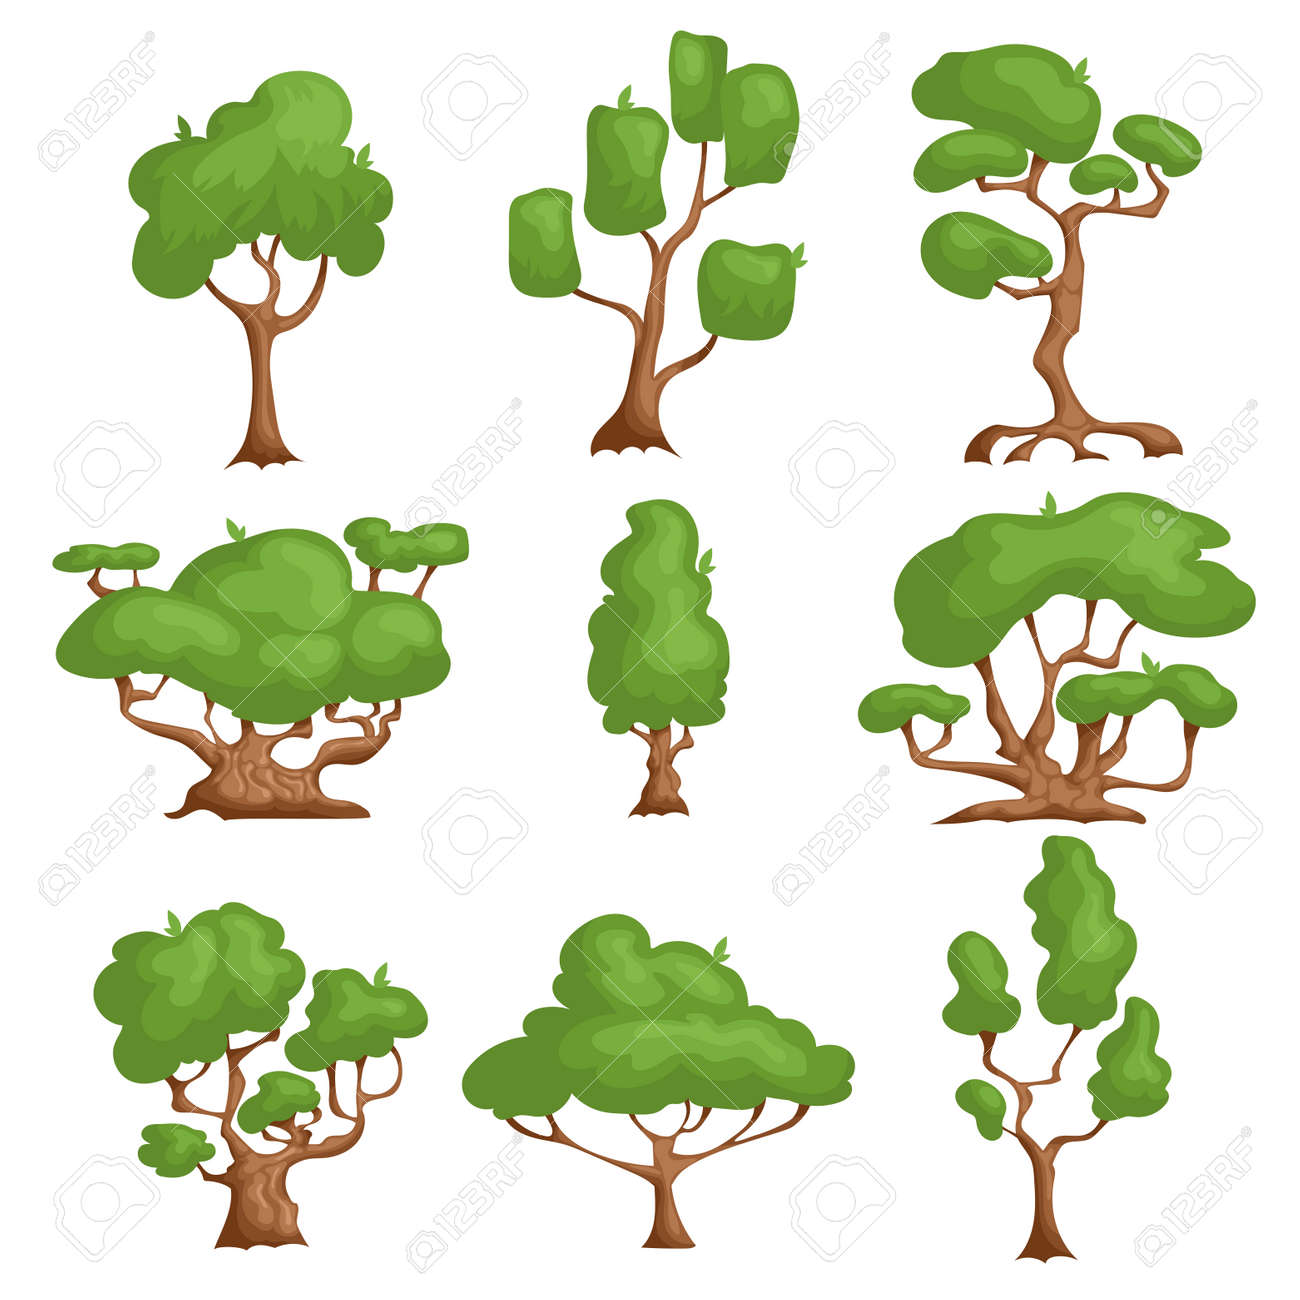 Cartoon trees set. Different types plants in comic style. Nature fantasy elements. Vector illustrations, icons isolated on white background. - 149666027